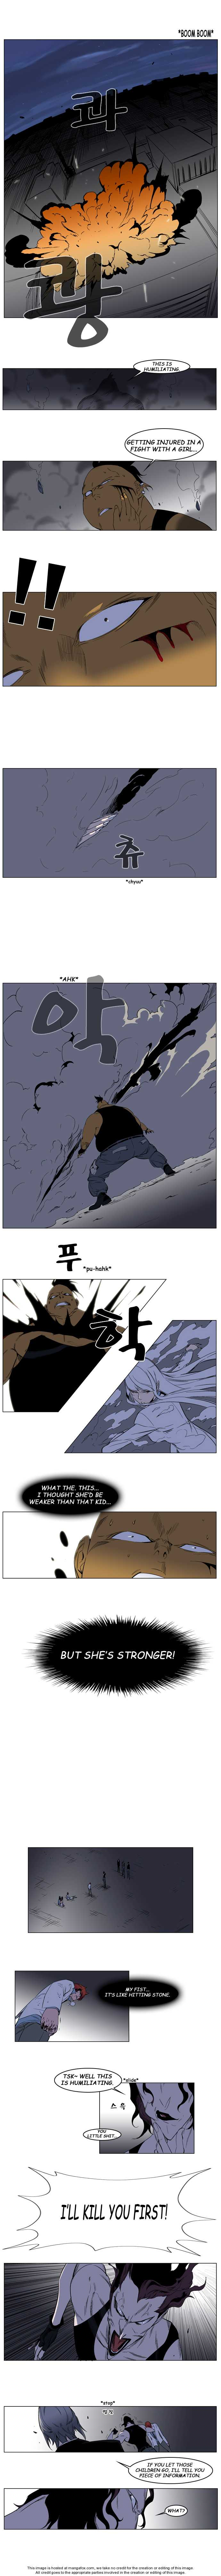 Noblesse 128 Page 2